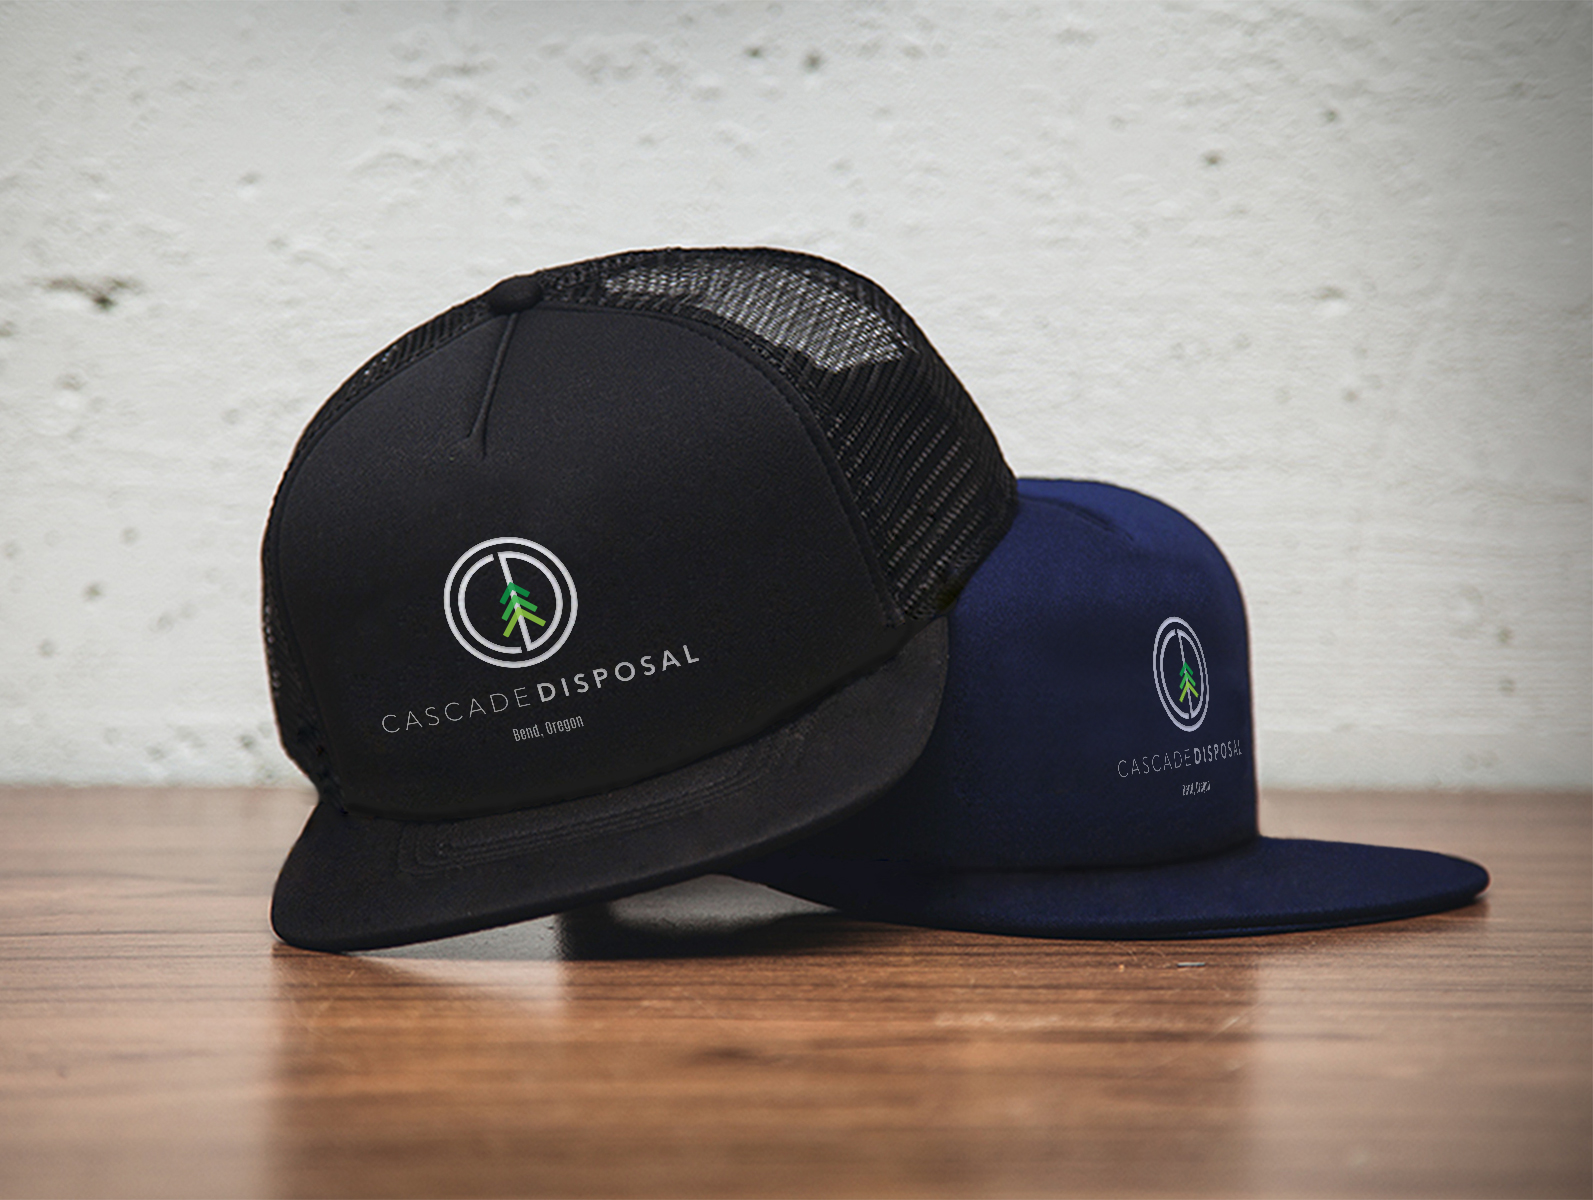 Cascade Disposal custom hat swag